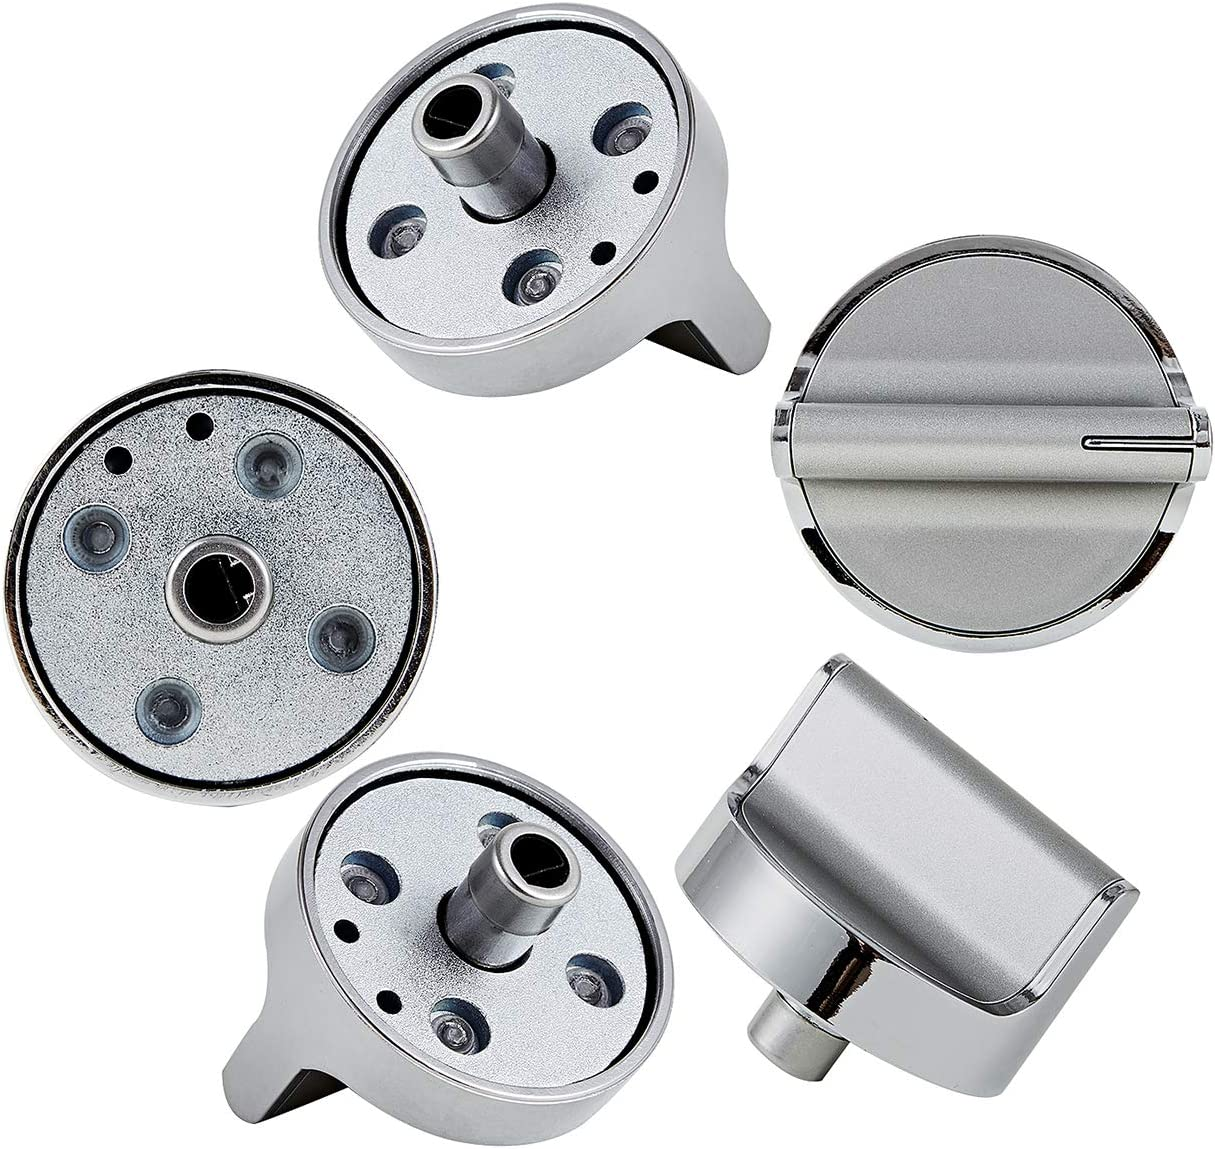 Stainless Steel W10594481 Knob Replacement for Whirlpool Stove//Range Control Knob Replace WPW10594481 W10698166 WCG97US0DS00 PS11756643 AP6023301 High Durable